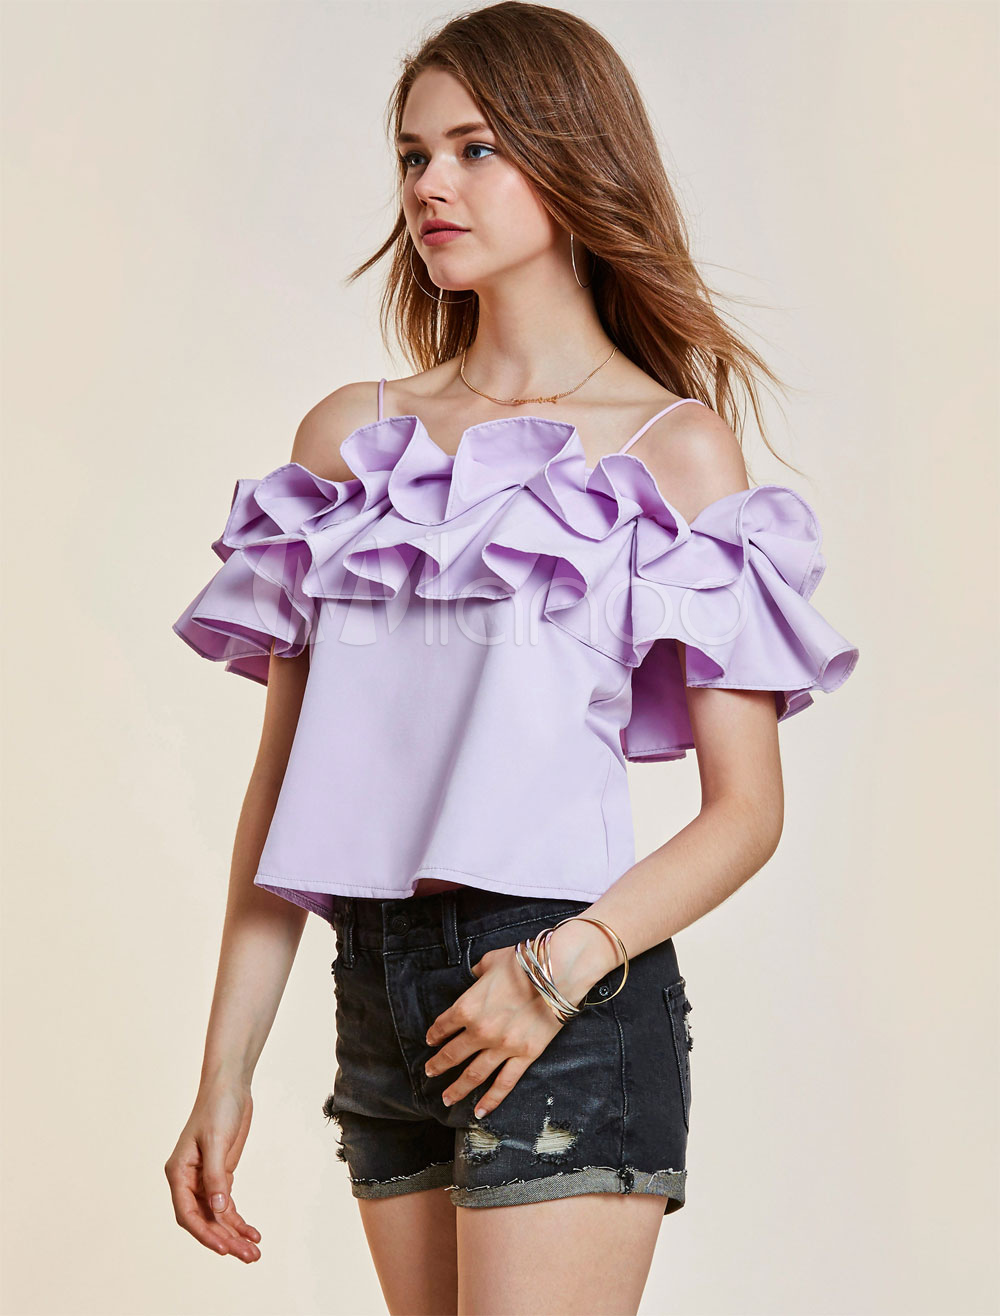 Buy Women Blouses Straps Cold Shoulder Short Sleeve Ruffles Layered Lavender Top for $22.49 in Milanoo store